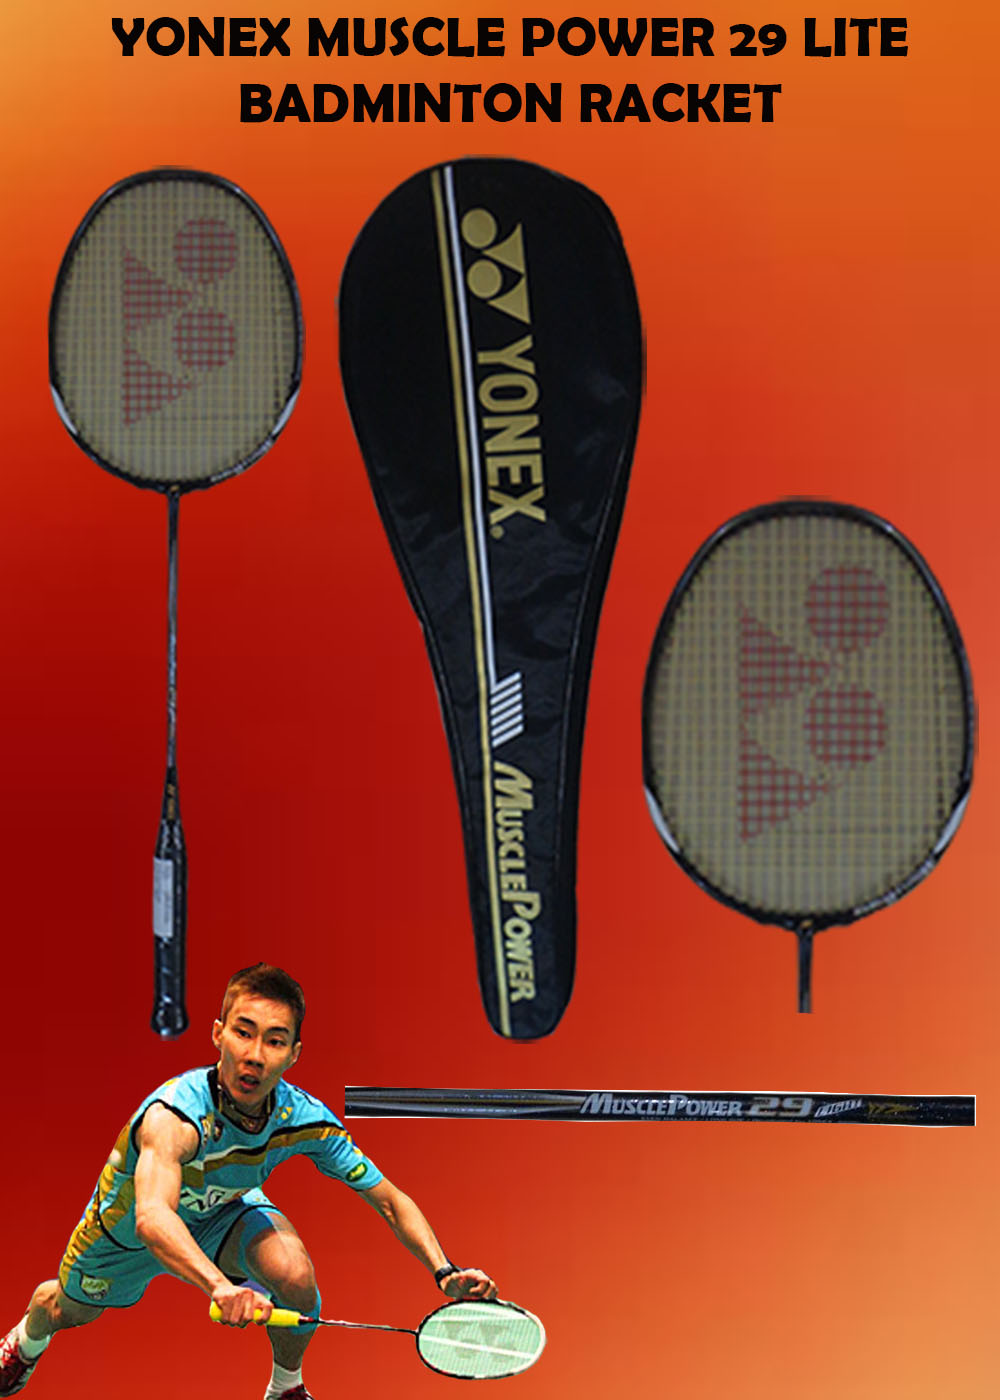 Yonex Muscle Power 29 Light